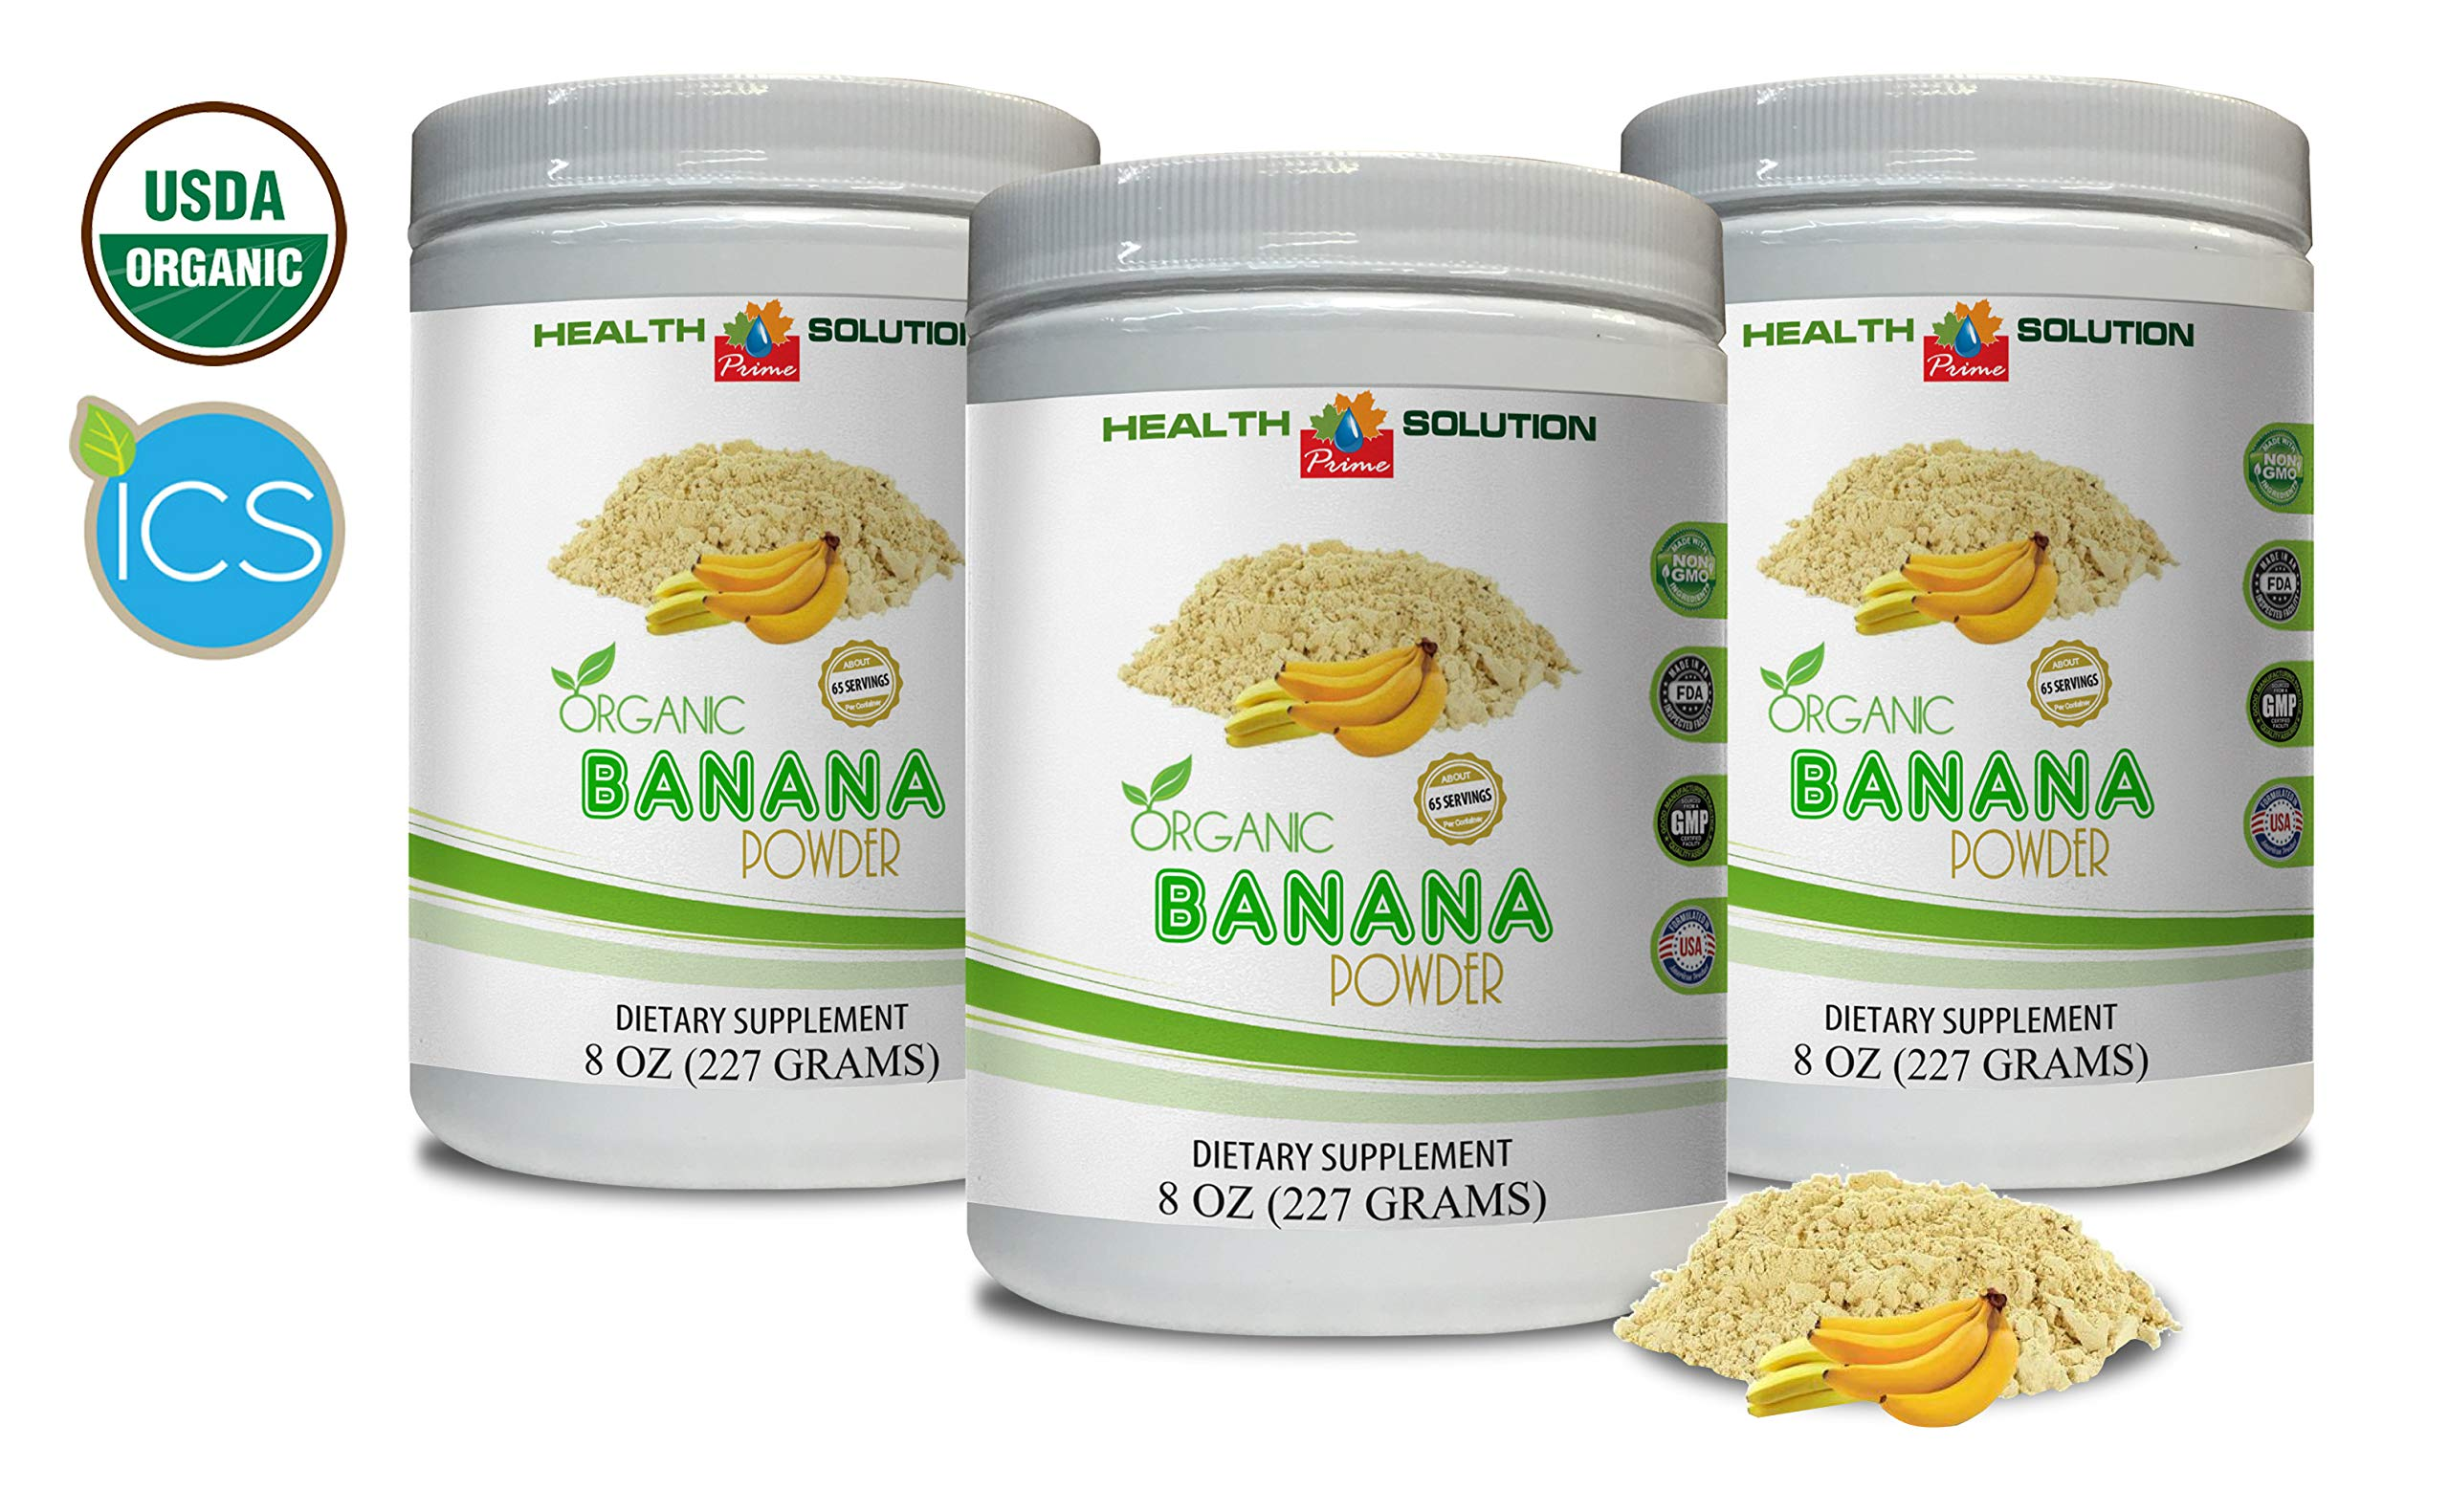 Mood Support Powder - Organic Banana Powder - Digestive Supplements - 3 Cans 24 OZ (195 Servings) by Health Solution Prime (Image #1)